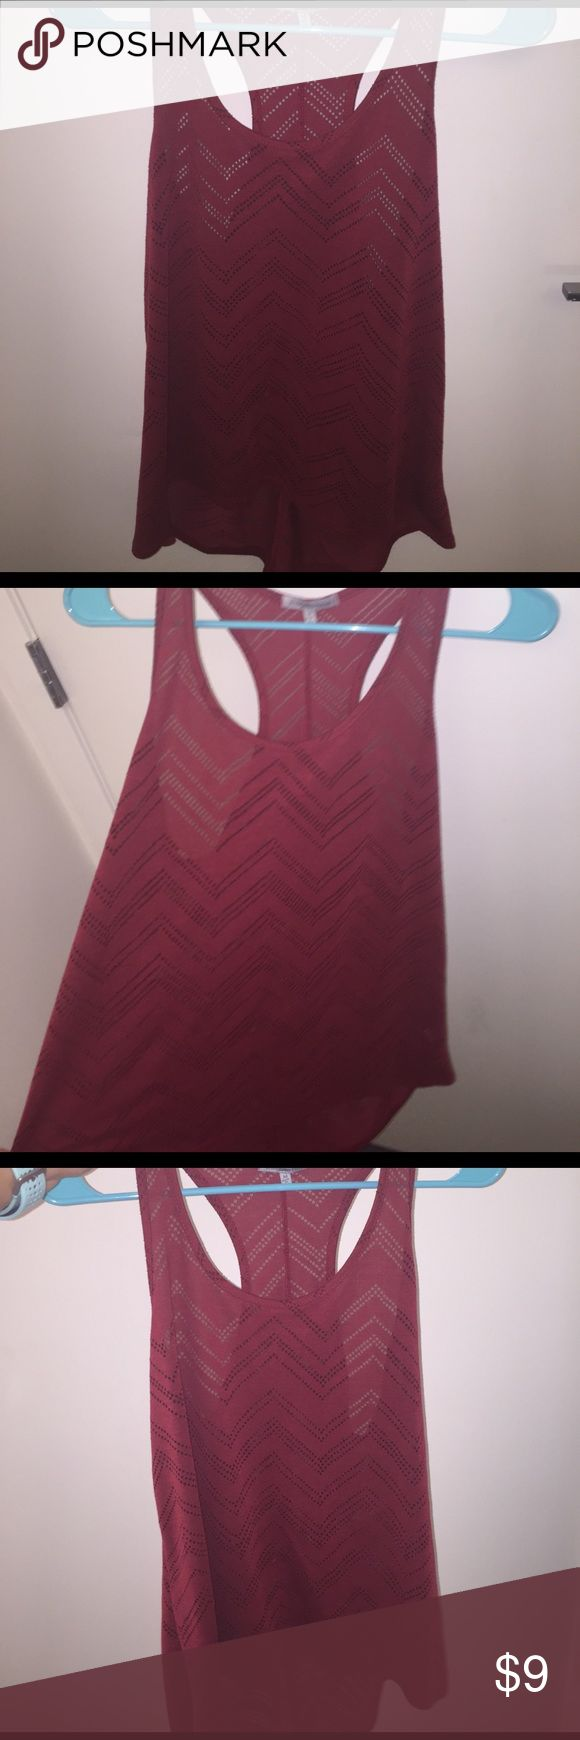 Burgundy chevron see through tank top Burgundy/ Maroon colored tank top with a chevron pattern that is slightly see through. never worn!! Charlotte Russe Tops Tank Tops